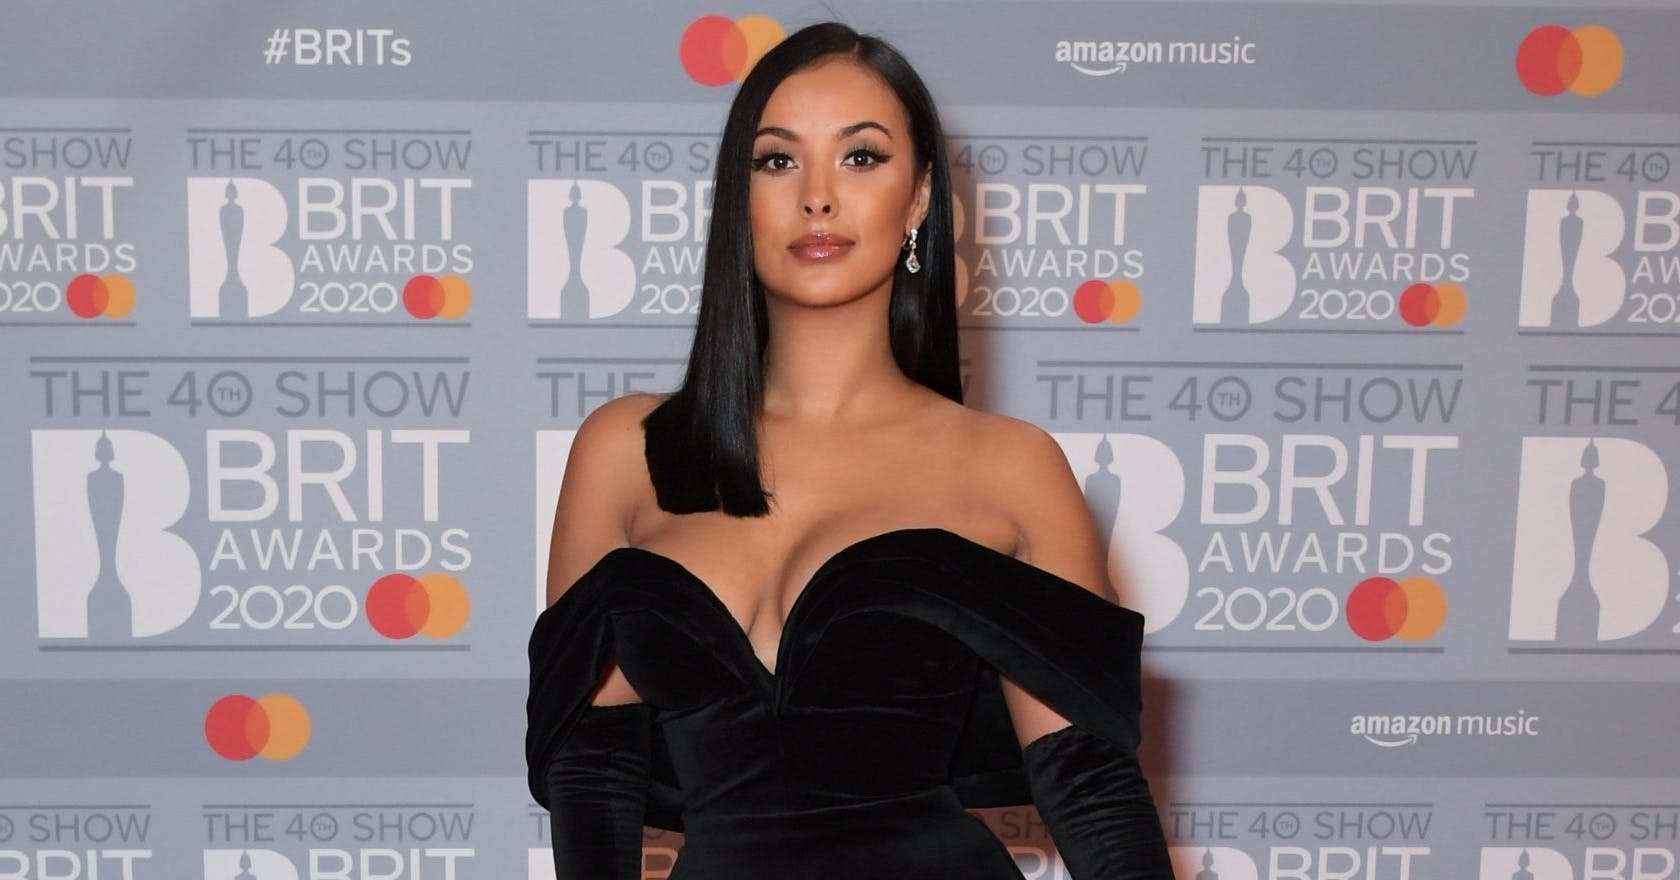 Brit Awards 2020: The best red carpet looks